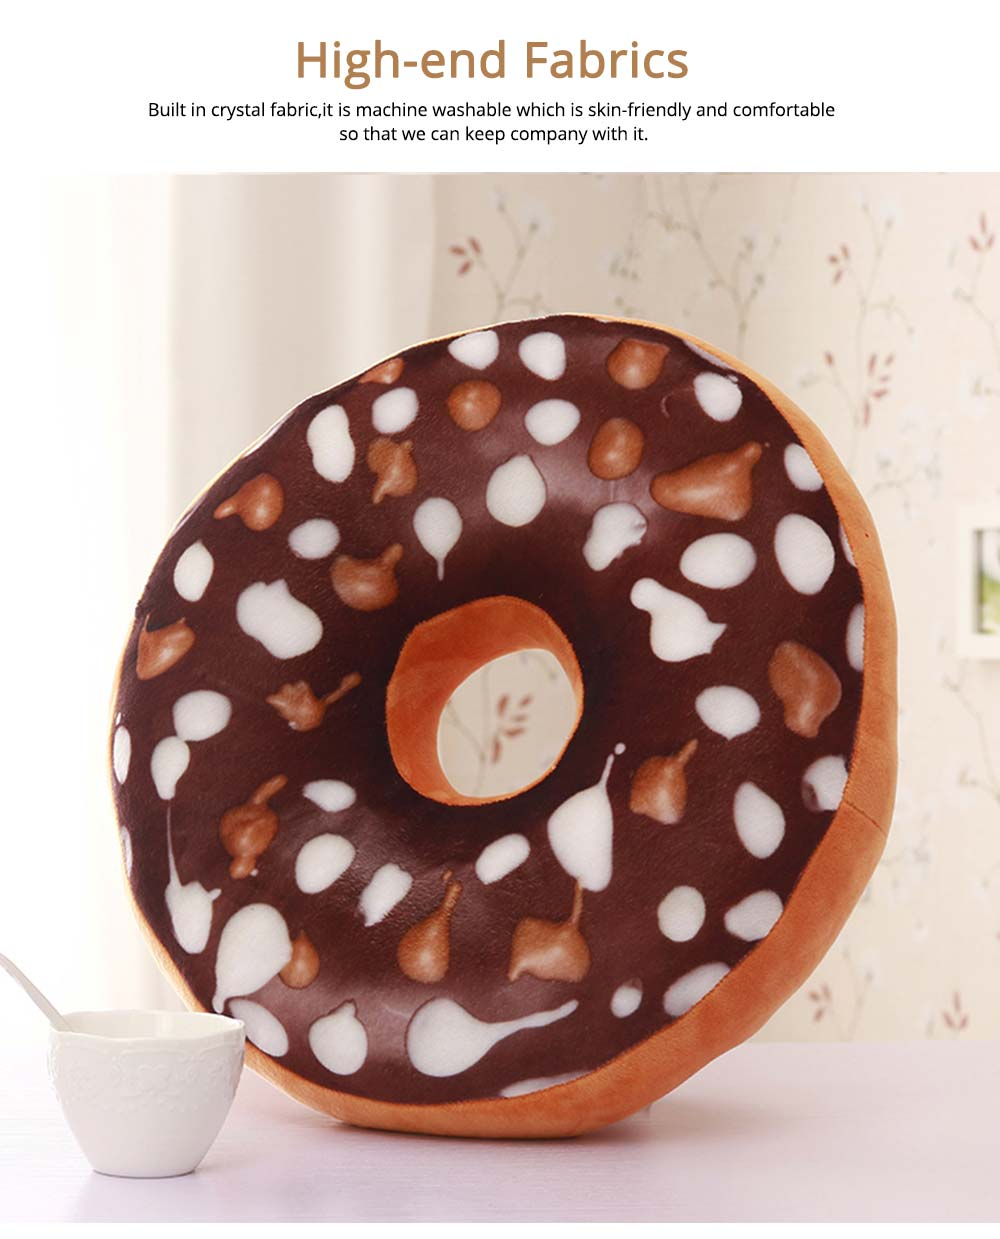 Imitation Doughnut Shape Pillow, Realistic Soft Cotton Pillow with Special 3D Effect, Printing Design Cotton Pillow 2